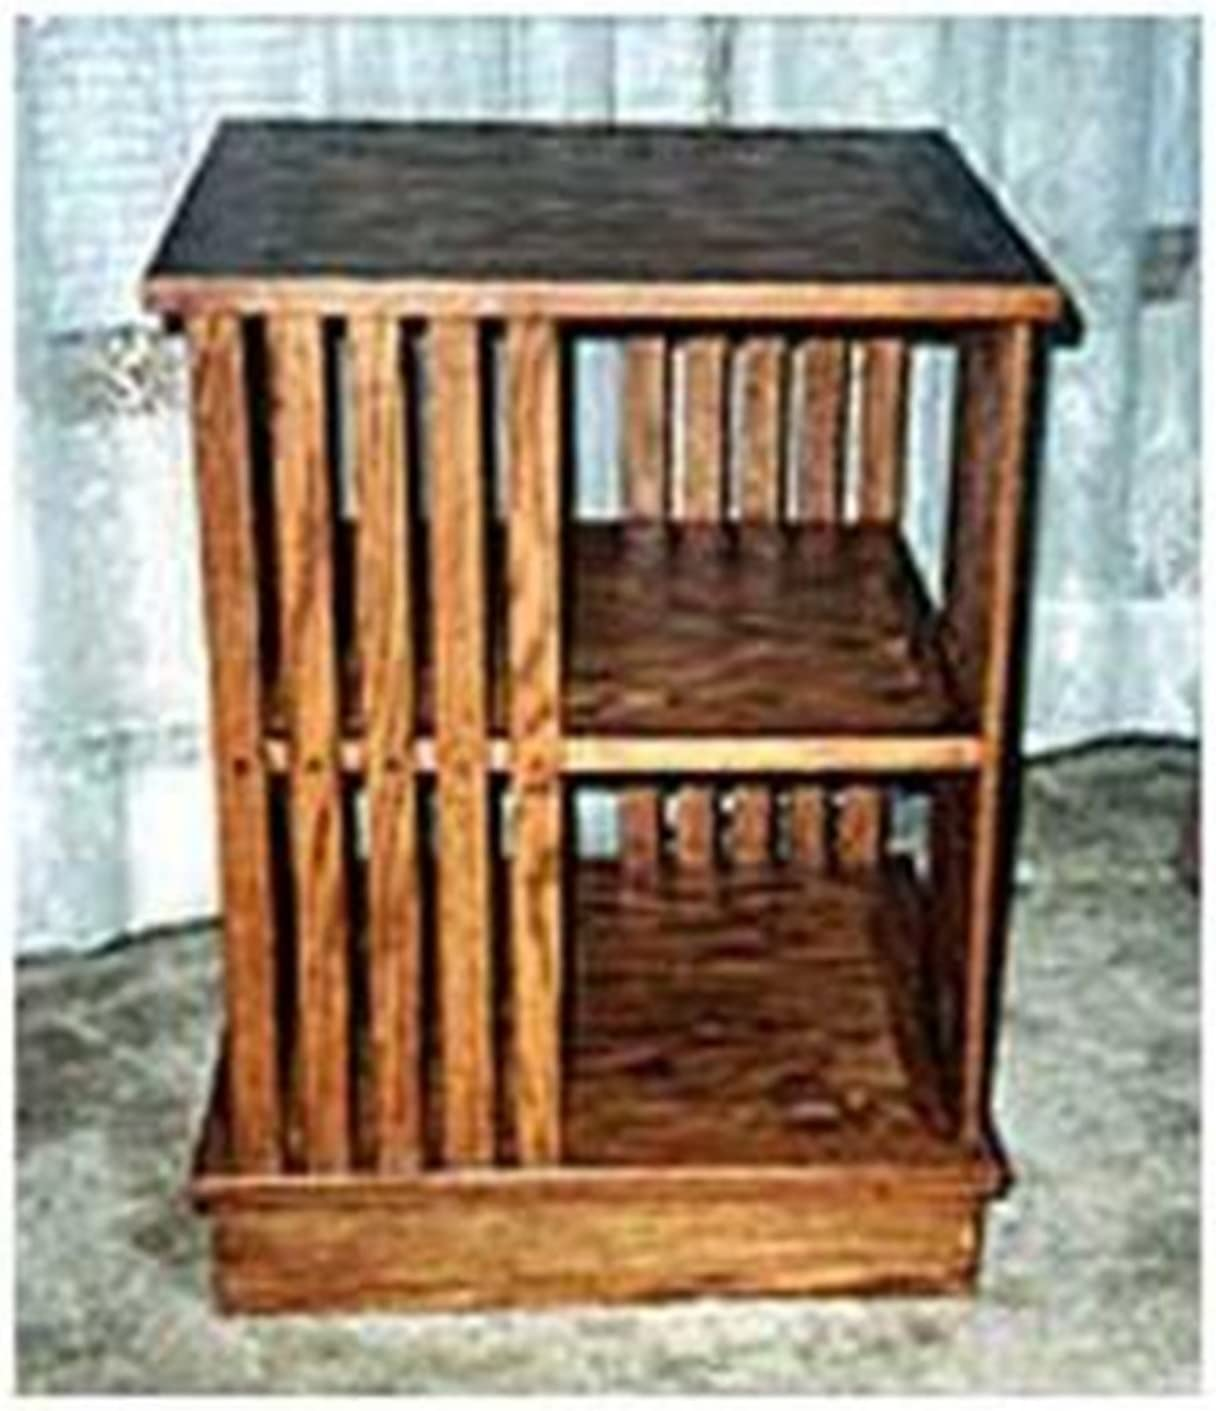 Woodworking Project Paper Plan To Build Revolving Bookcase